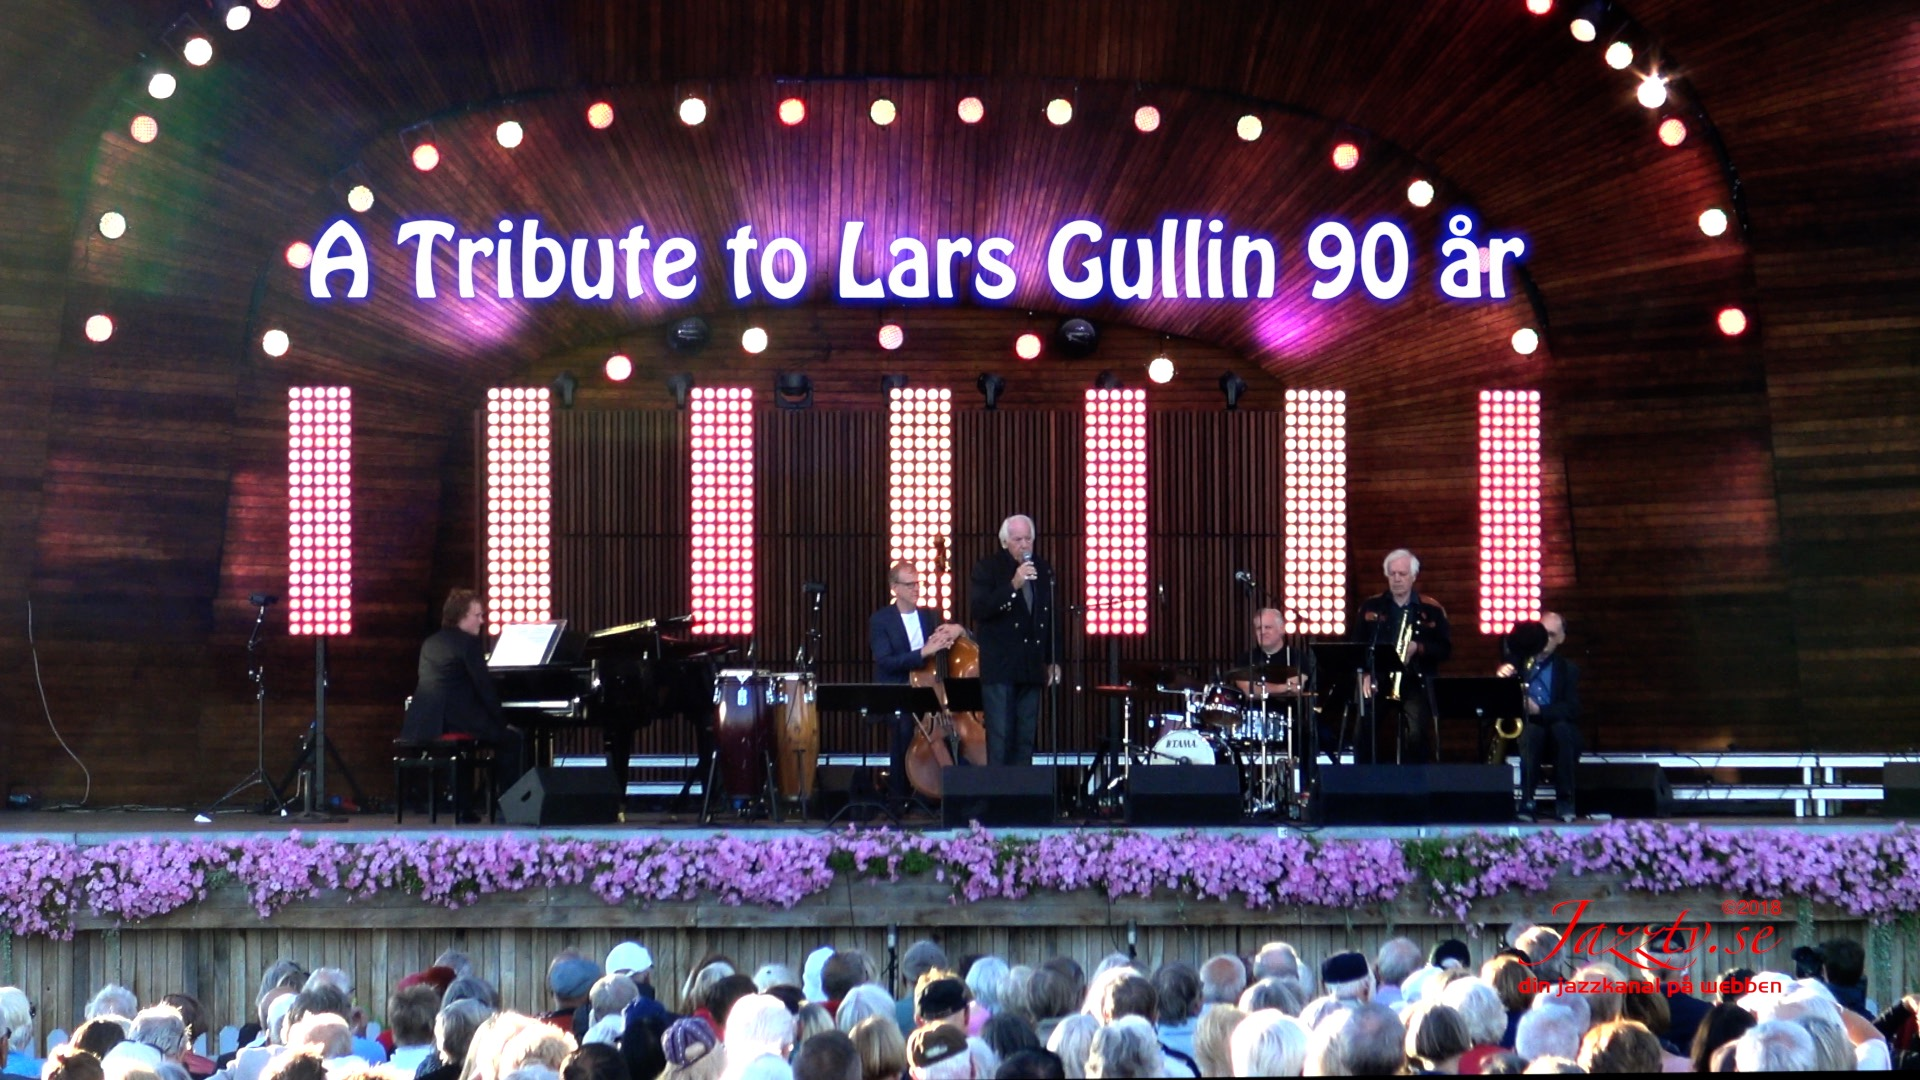 A tribute to Lars Gullin 90 år